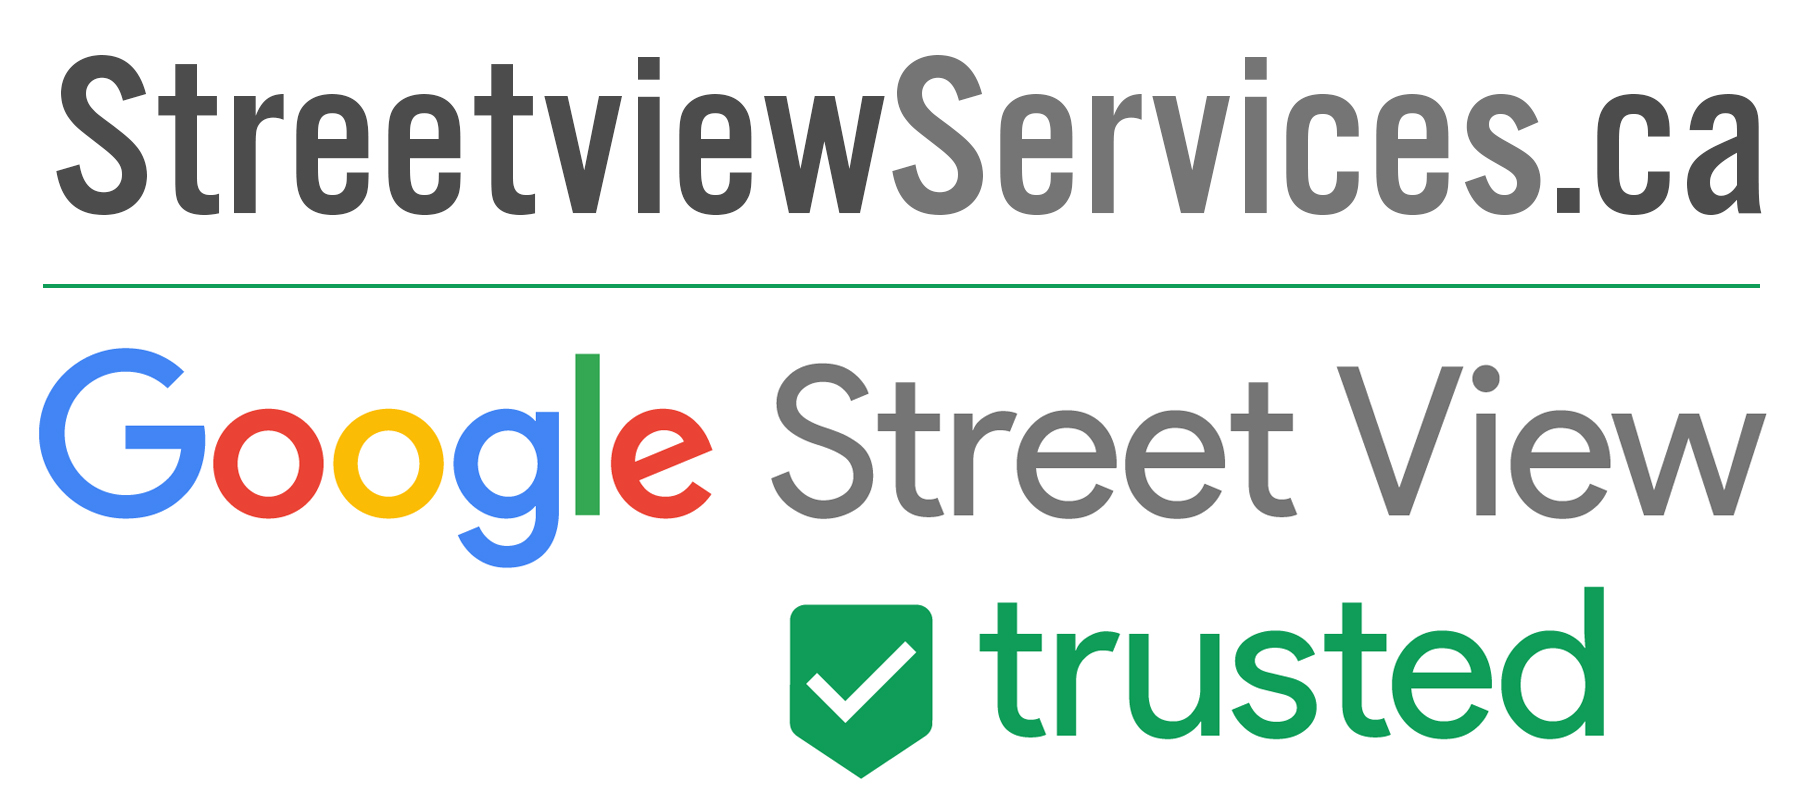 StreetviewServices.ca. Google Street View. Trusted